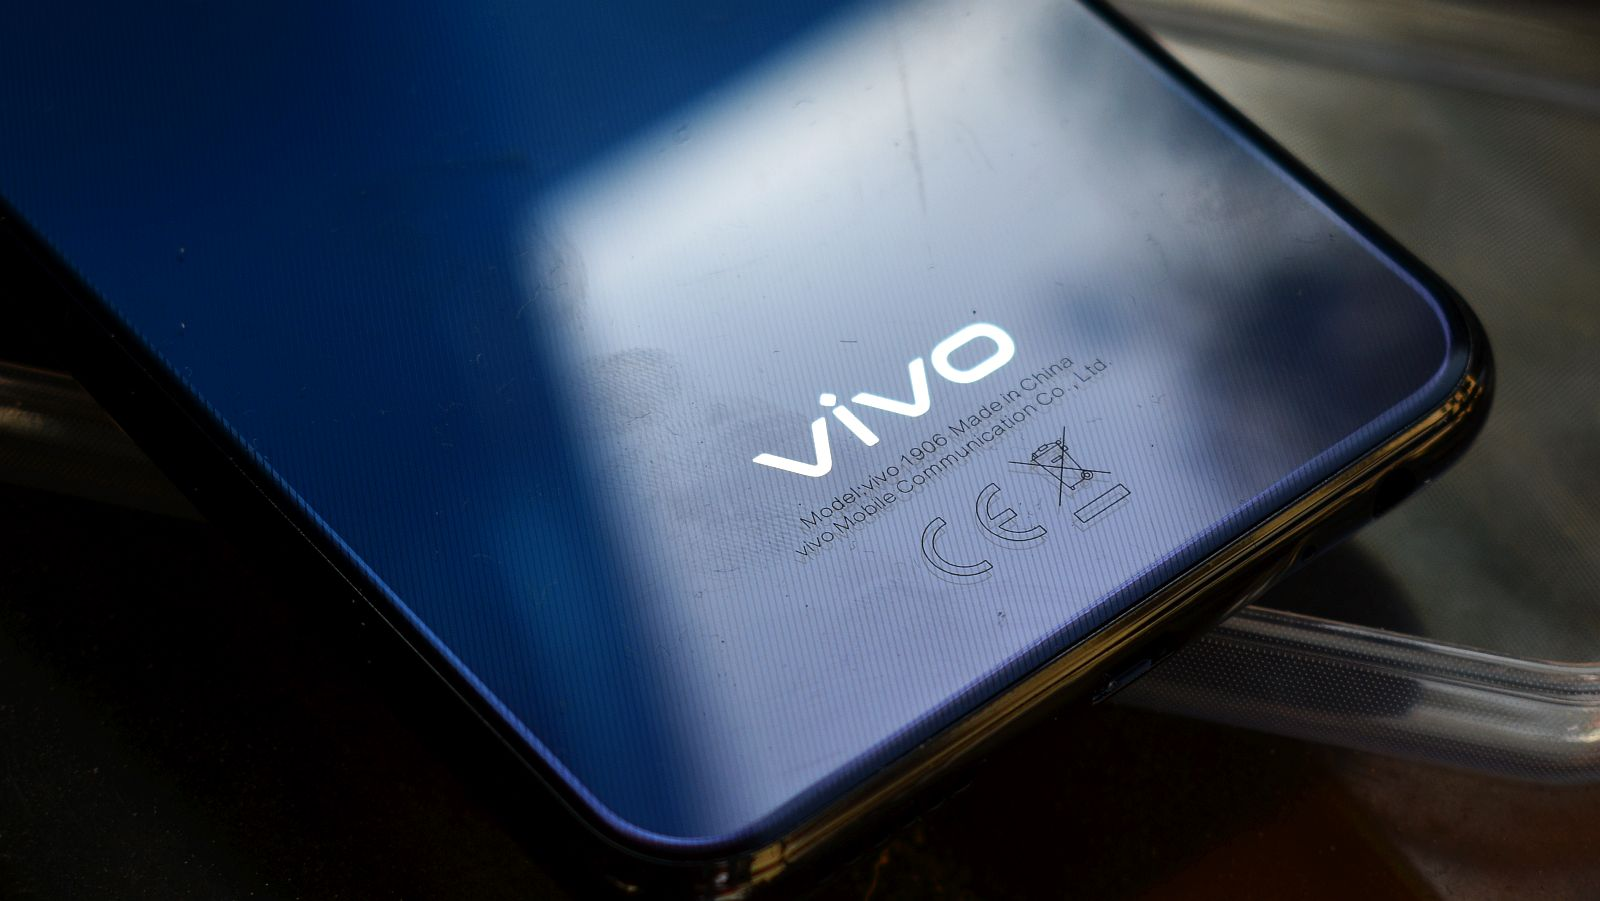 Vivo to bring two Y series phones to SA in July, 5G device before year-end - Memeburn